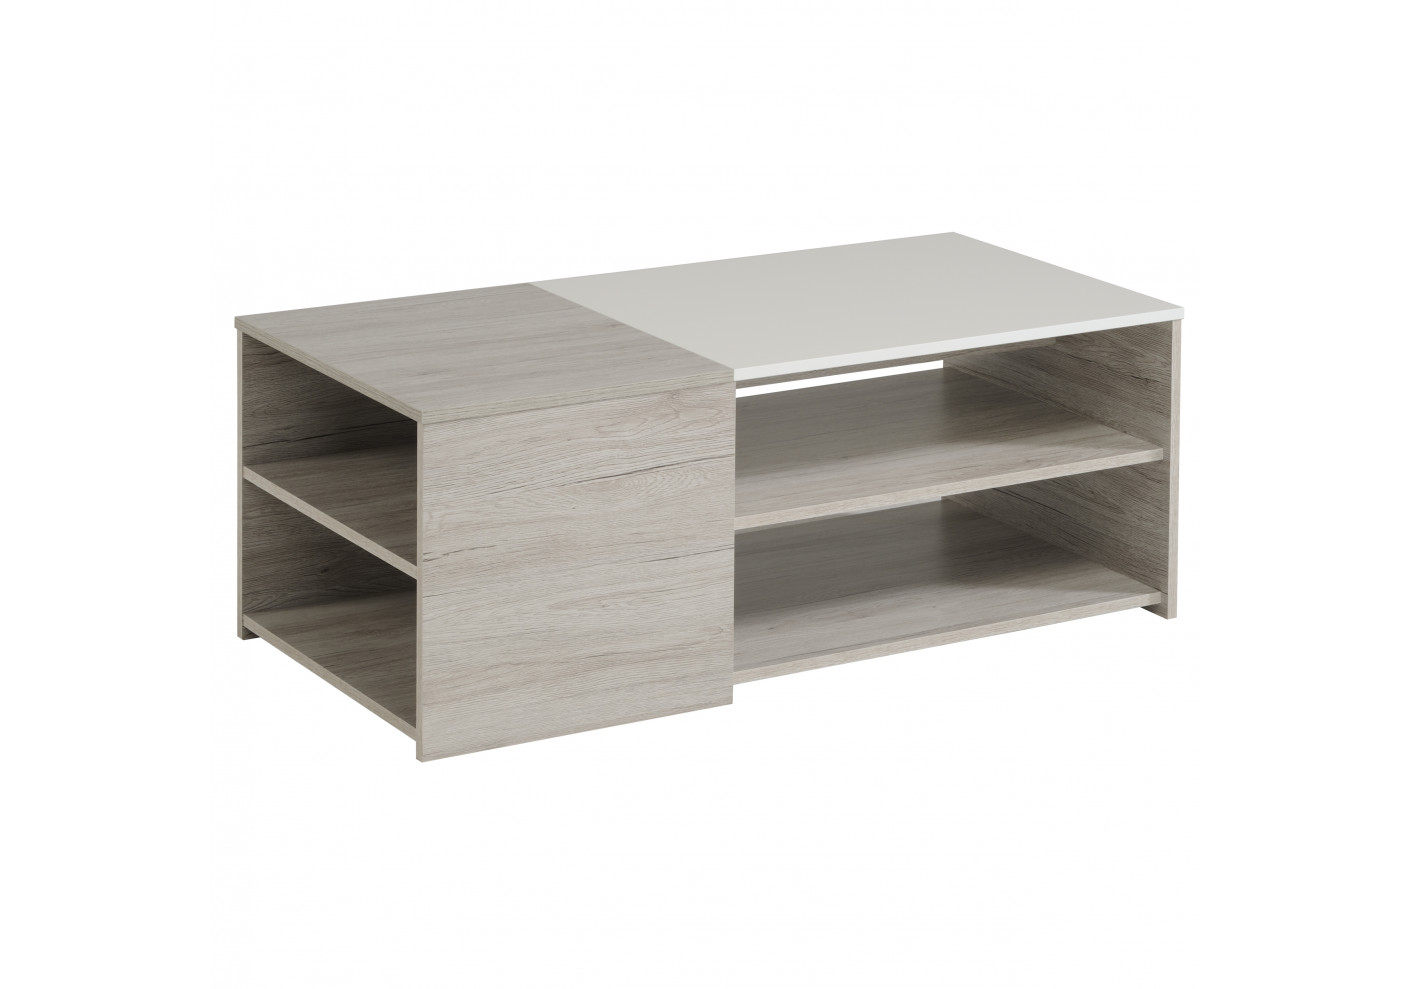 Table basse lumiled blanc brillant et gris - Table basse blanc brillant ...